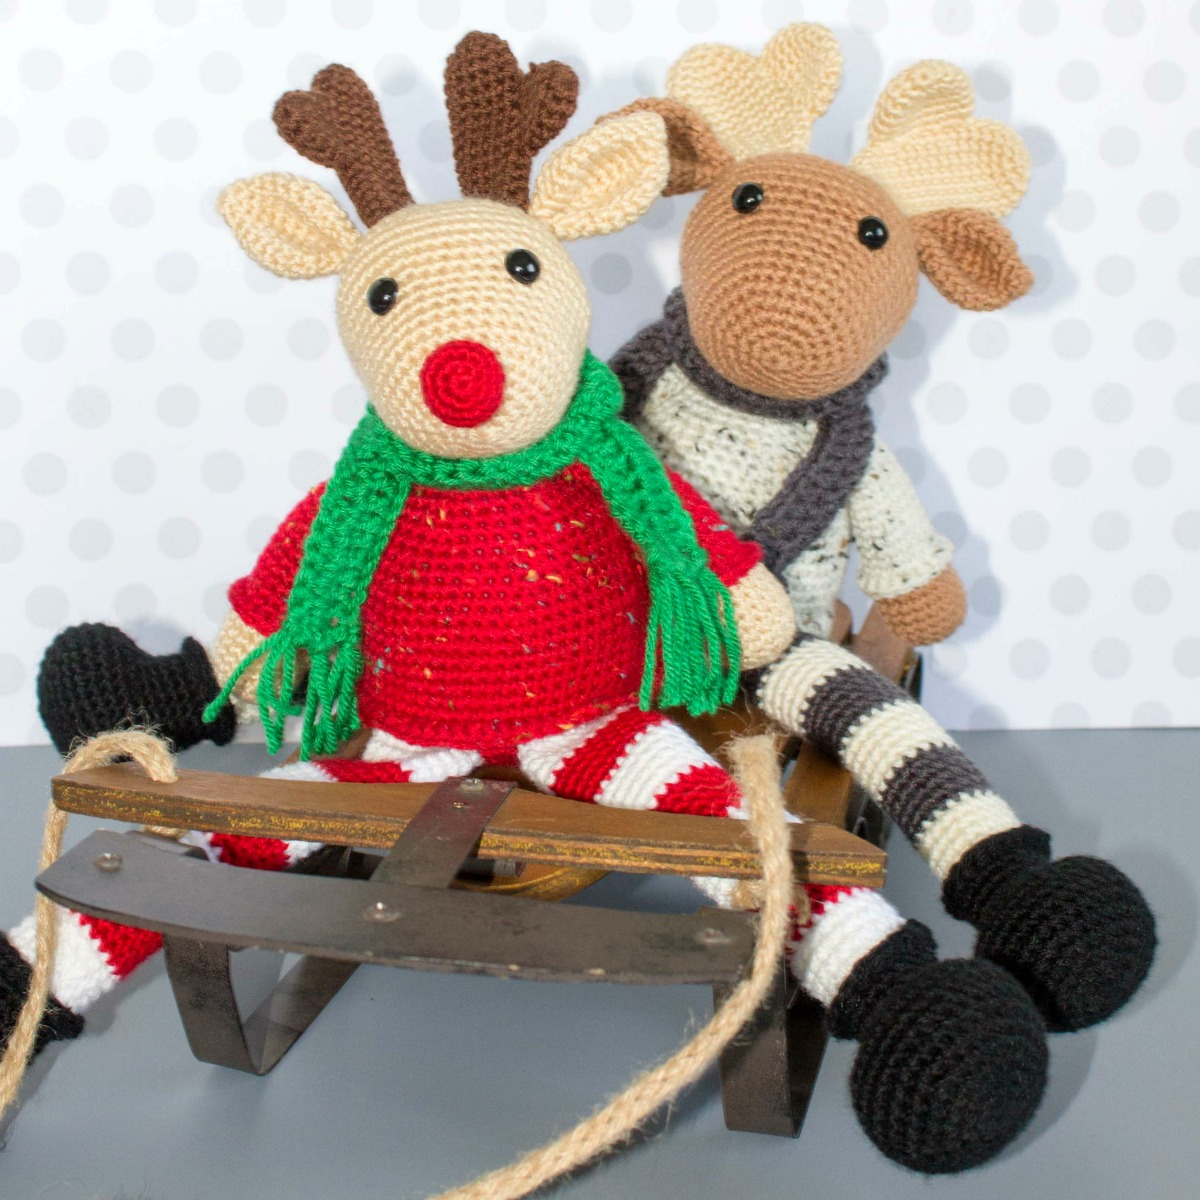 Free Crochet Moose and Crochet Reindeer Pattern - thefriendlyredfox.com